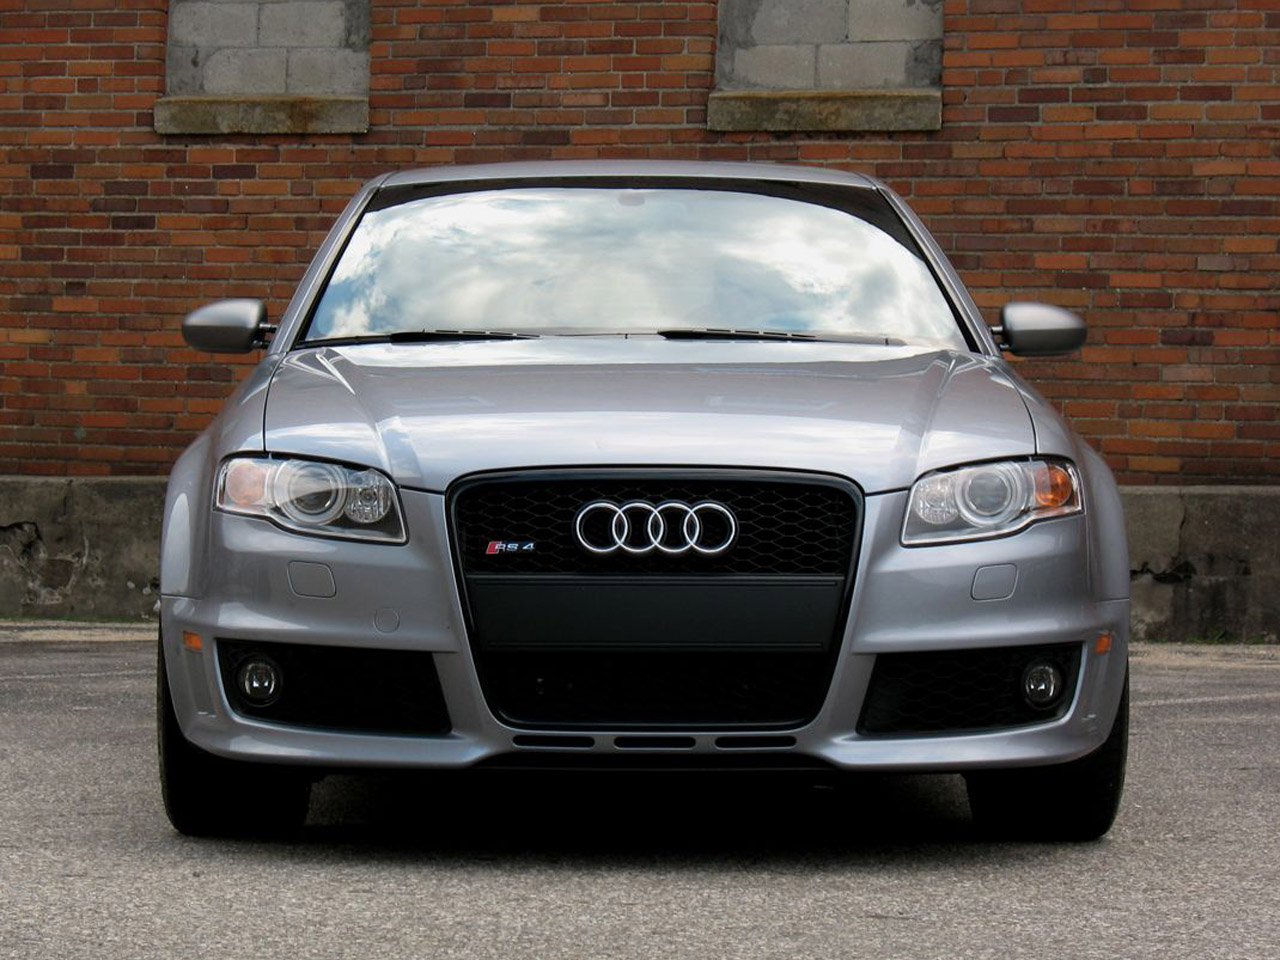 Acura Certified Pre-Owned >> Review: 2008 Audi RS4 Photo Gallery - Autoblog